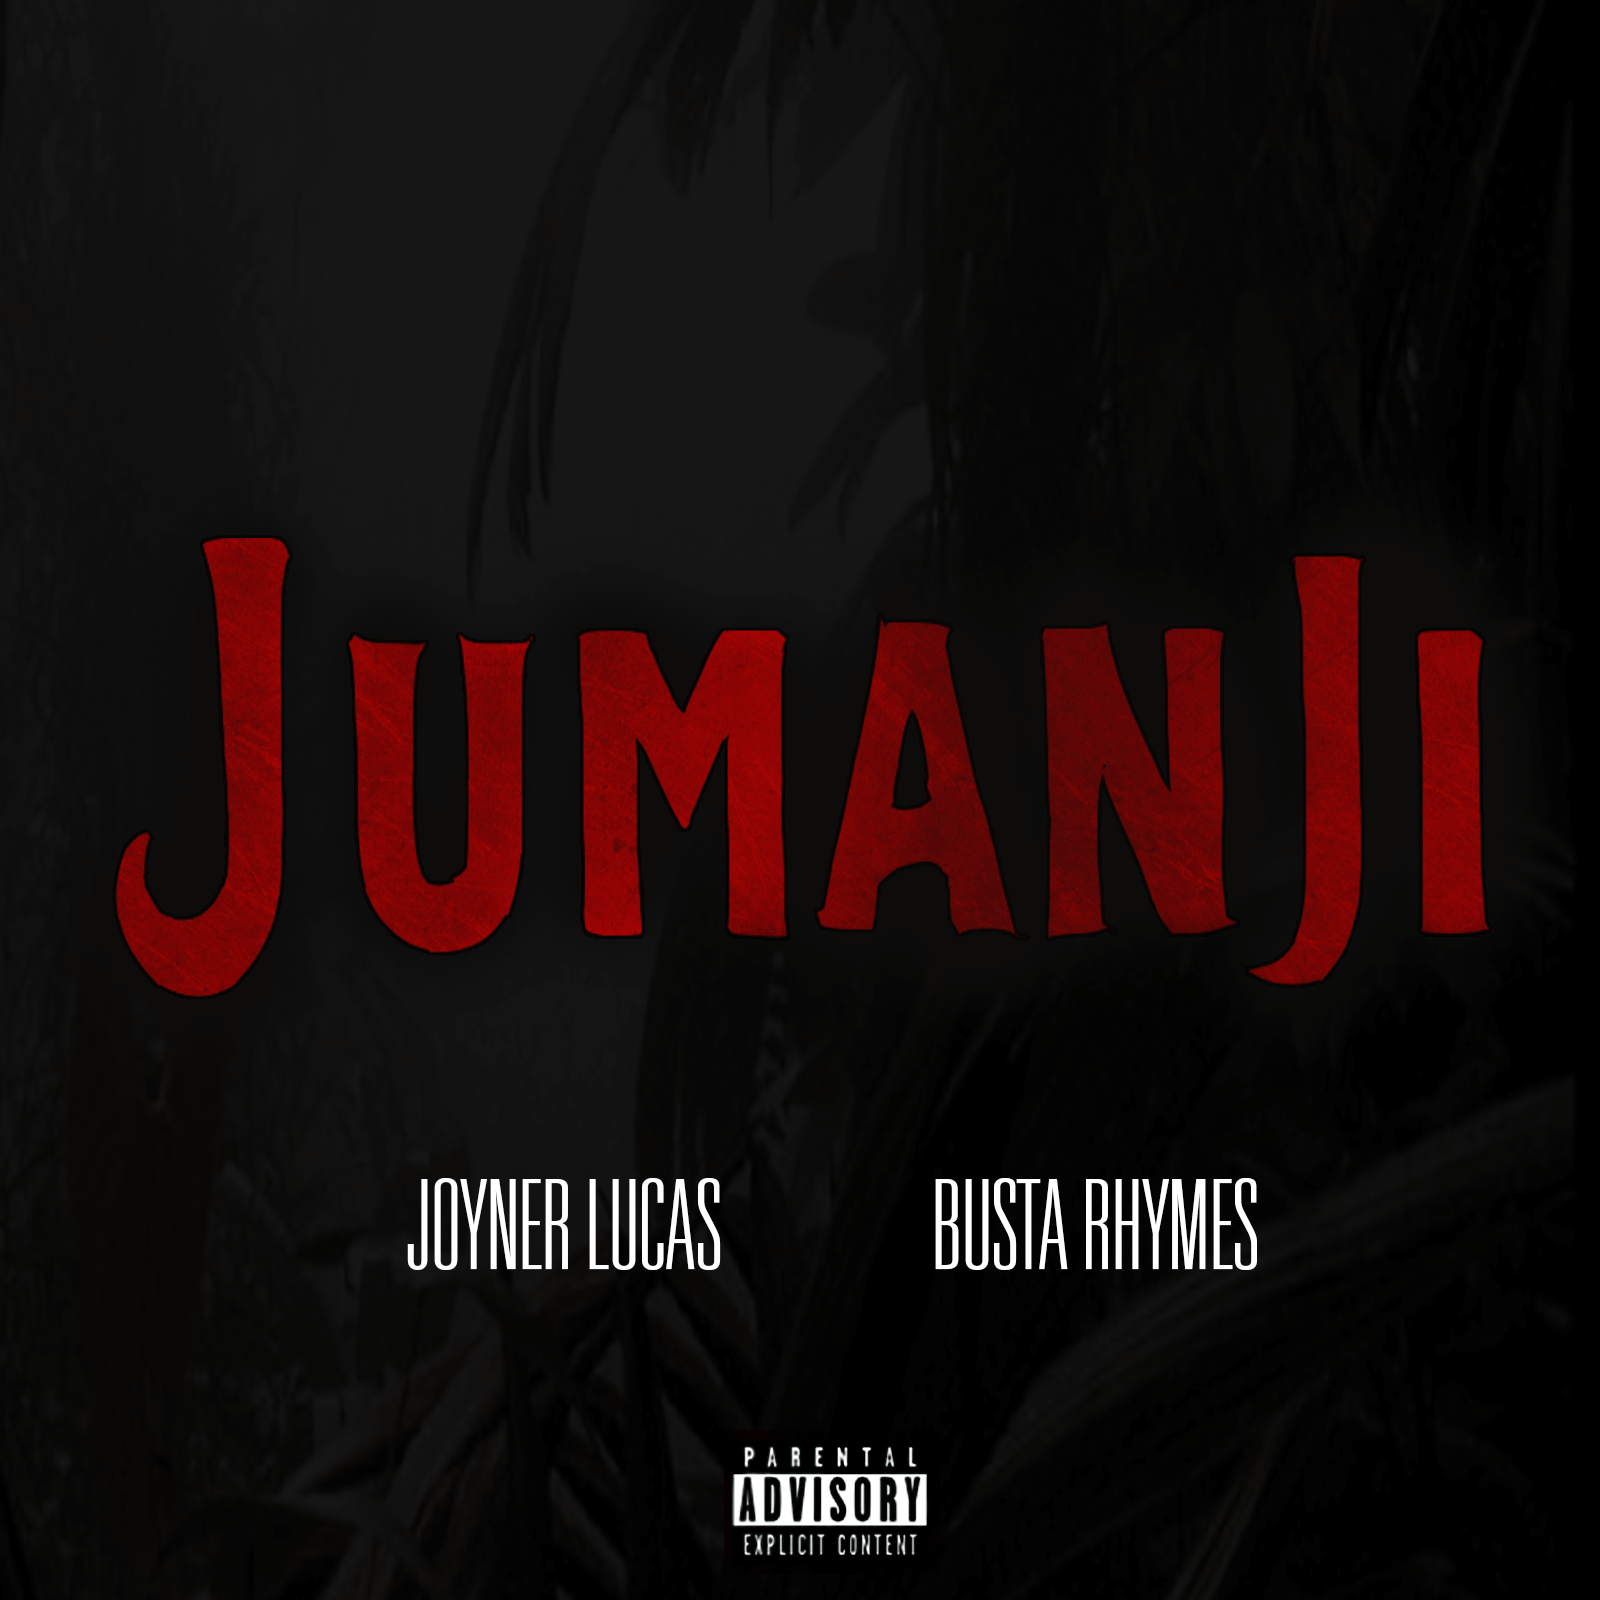 Raw Entertainment Jumanji Artwork